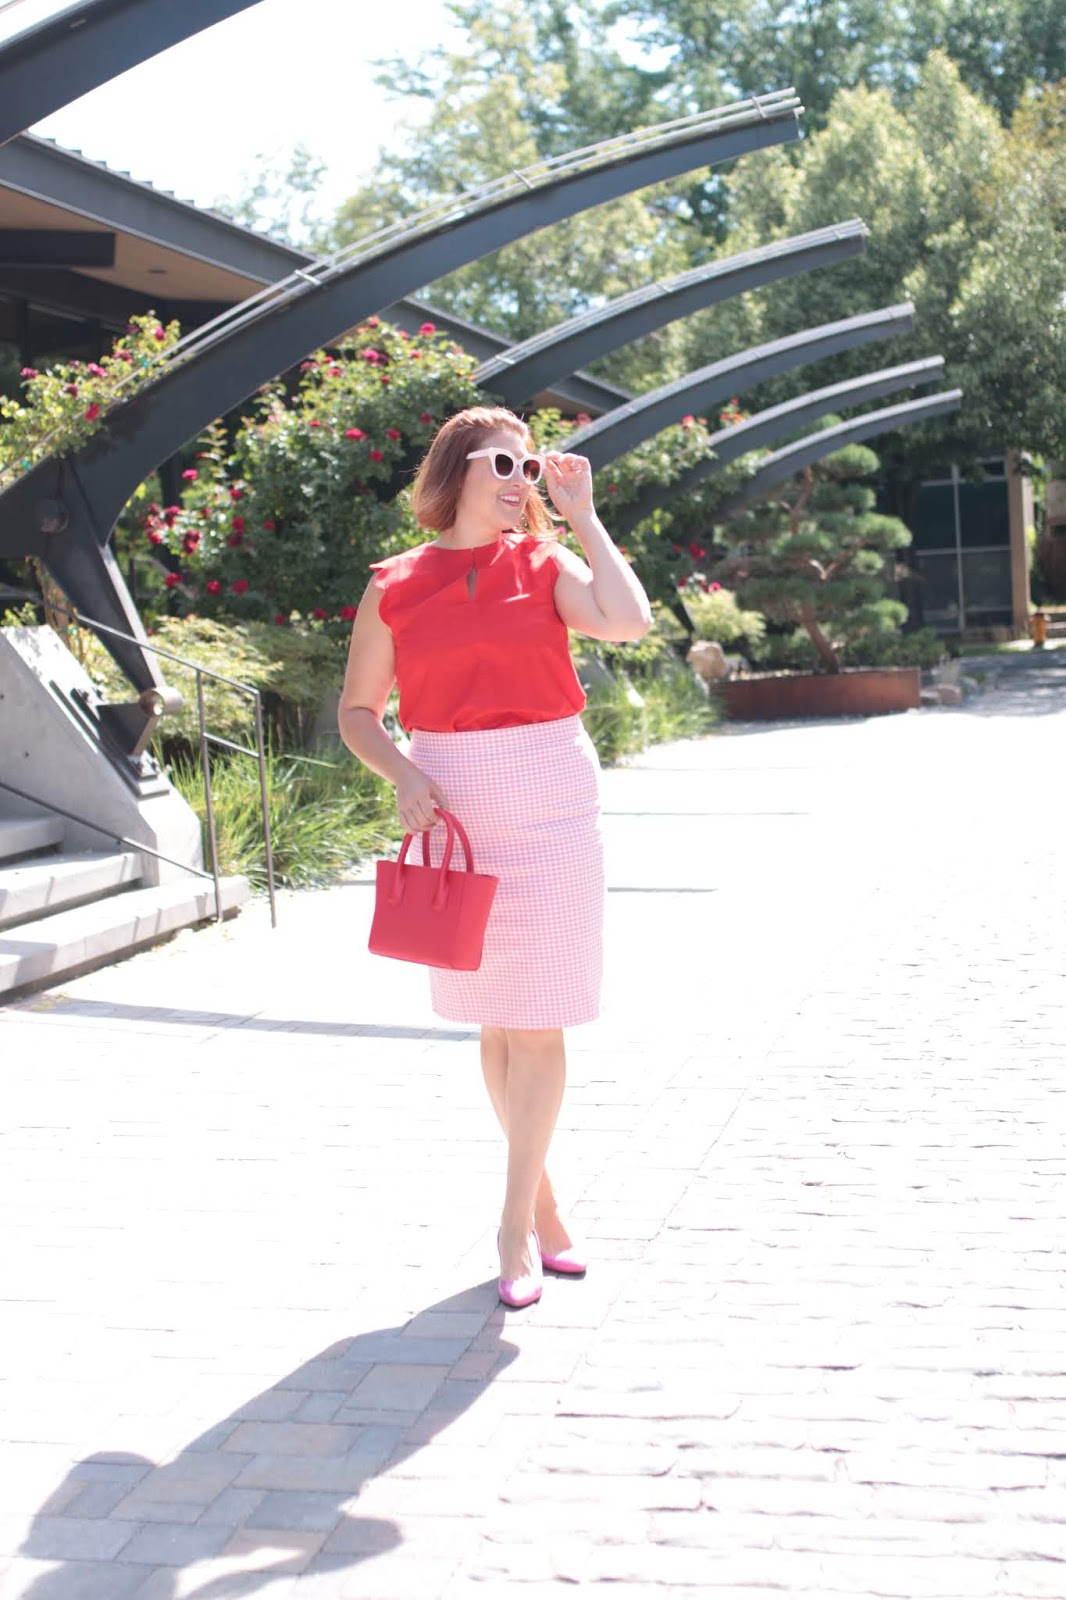 & other stories red scalloped top, Dagne dover poppy tote, J. Crew Gingham pencil skirt